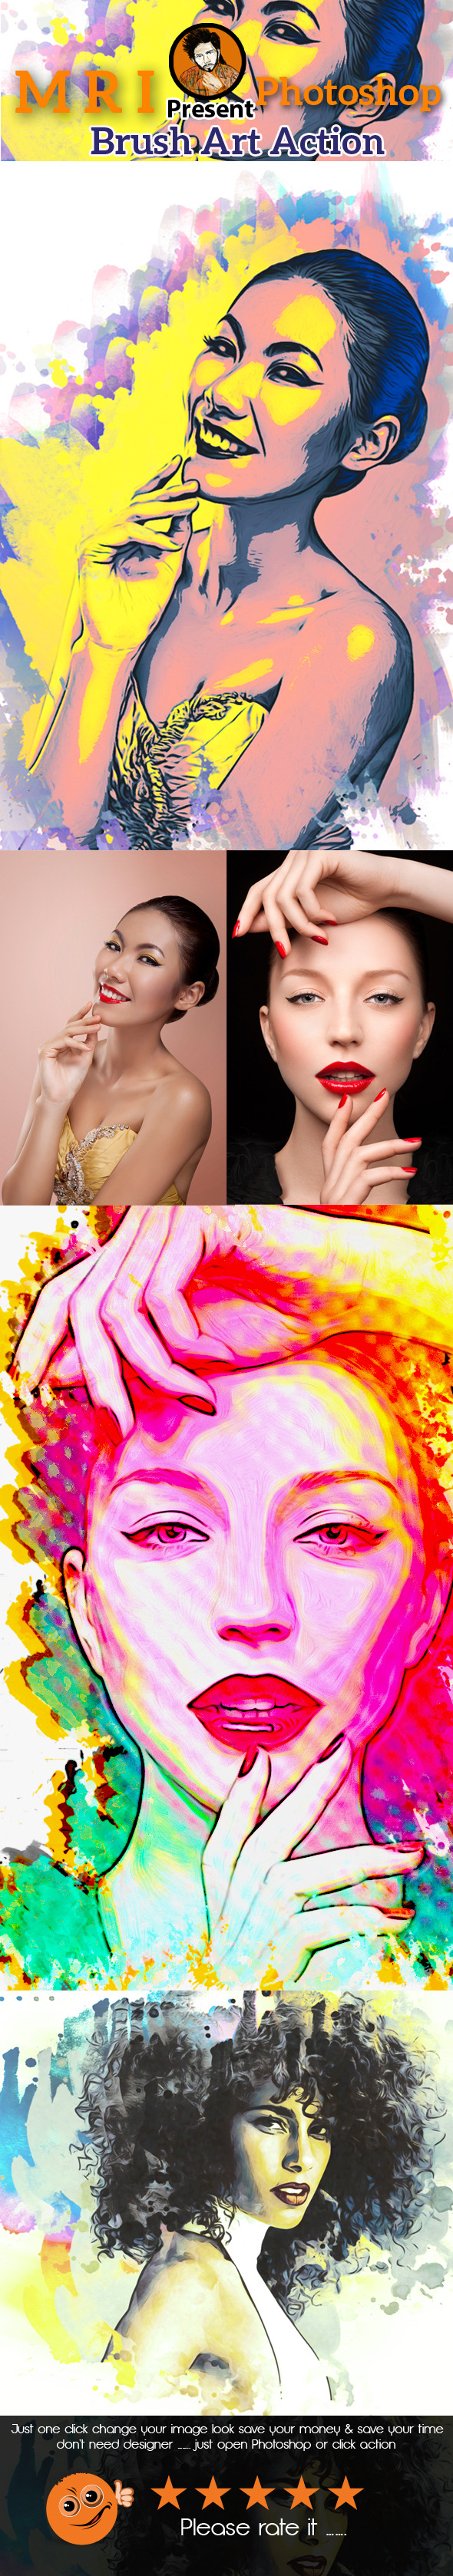 Brush Art Action - Actions Photoshop